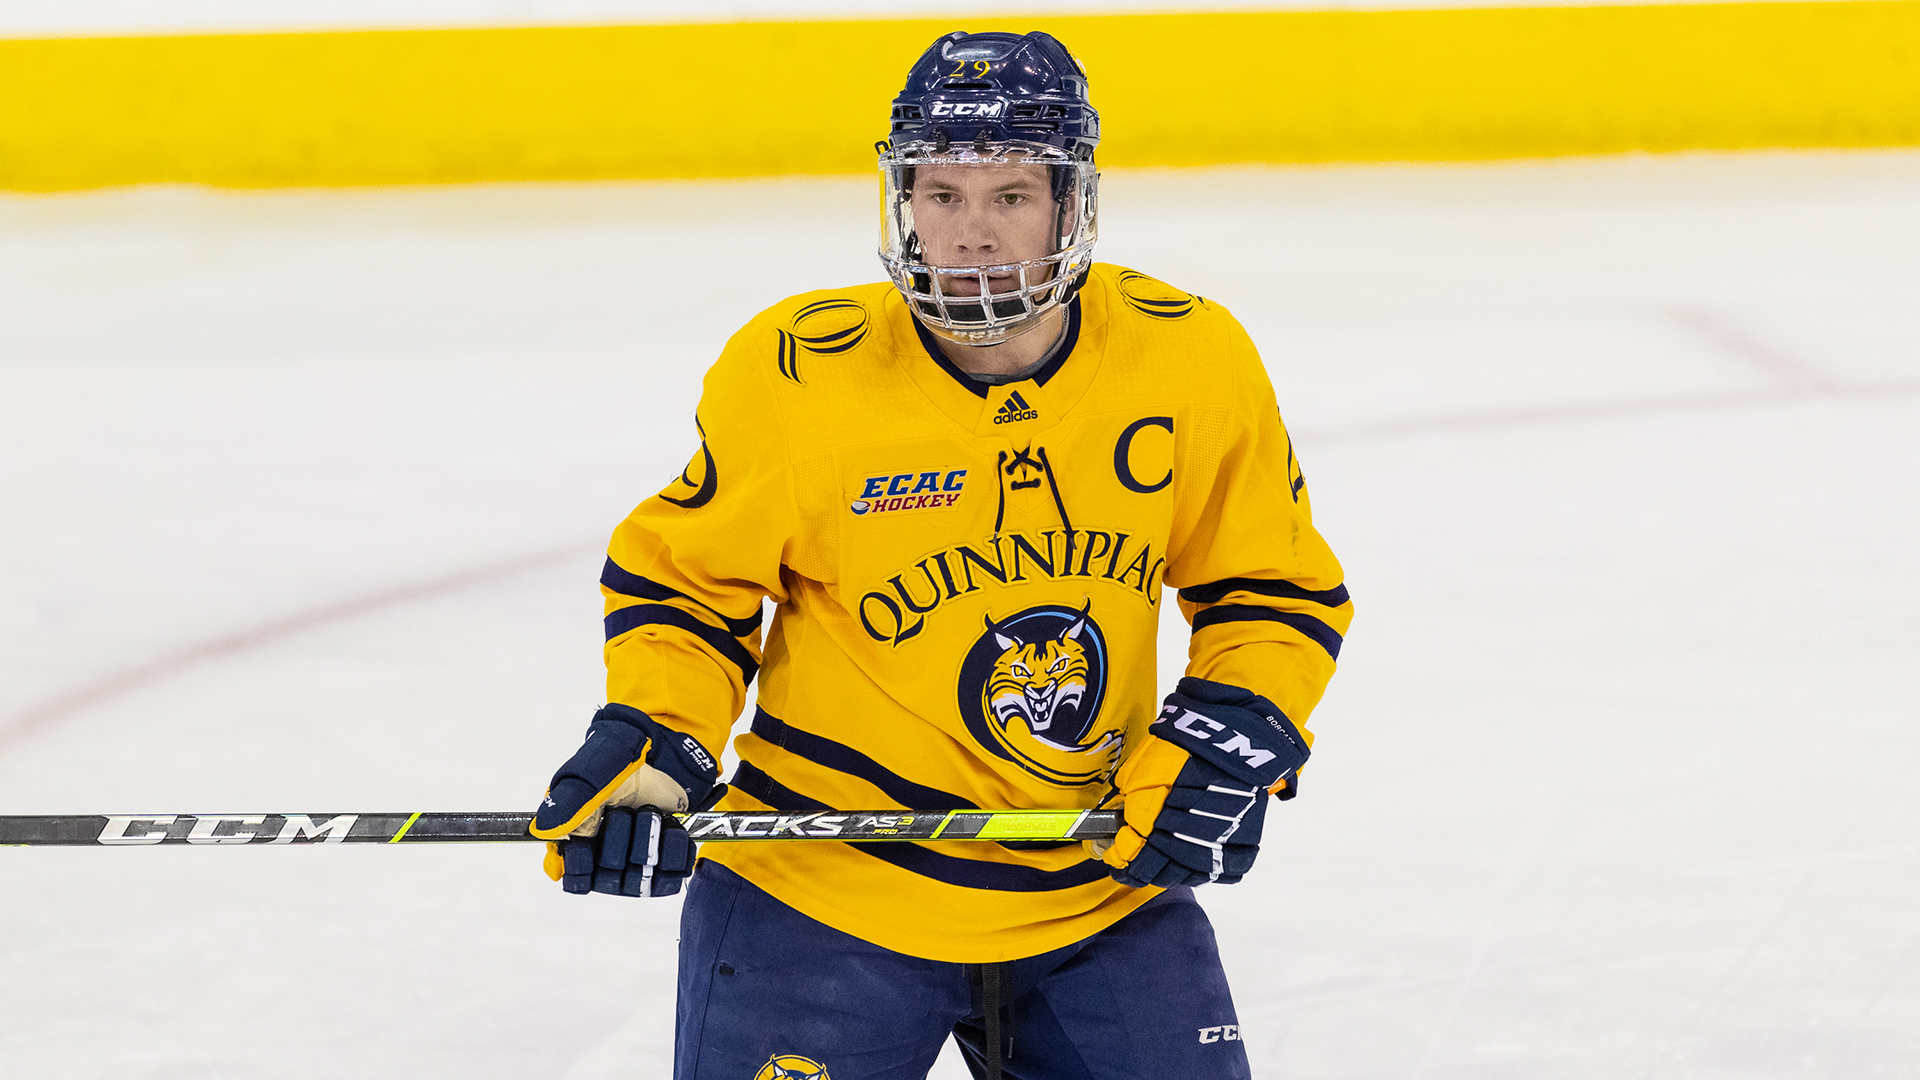 Odeen Tufto played for Quinnipiac before signing with the Tampa Bay Lightning. Photo: Quinnipiac Athletics.